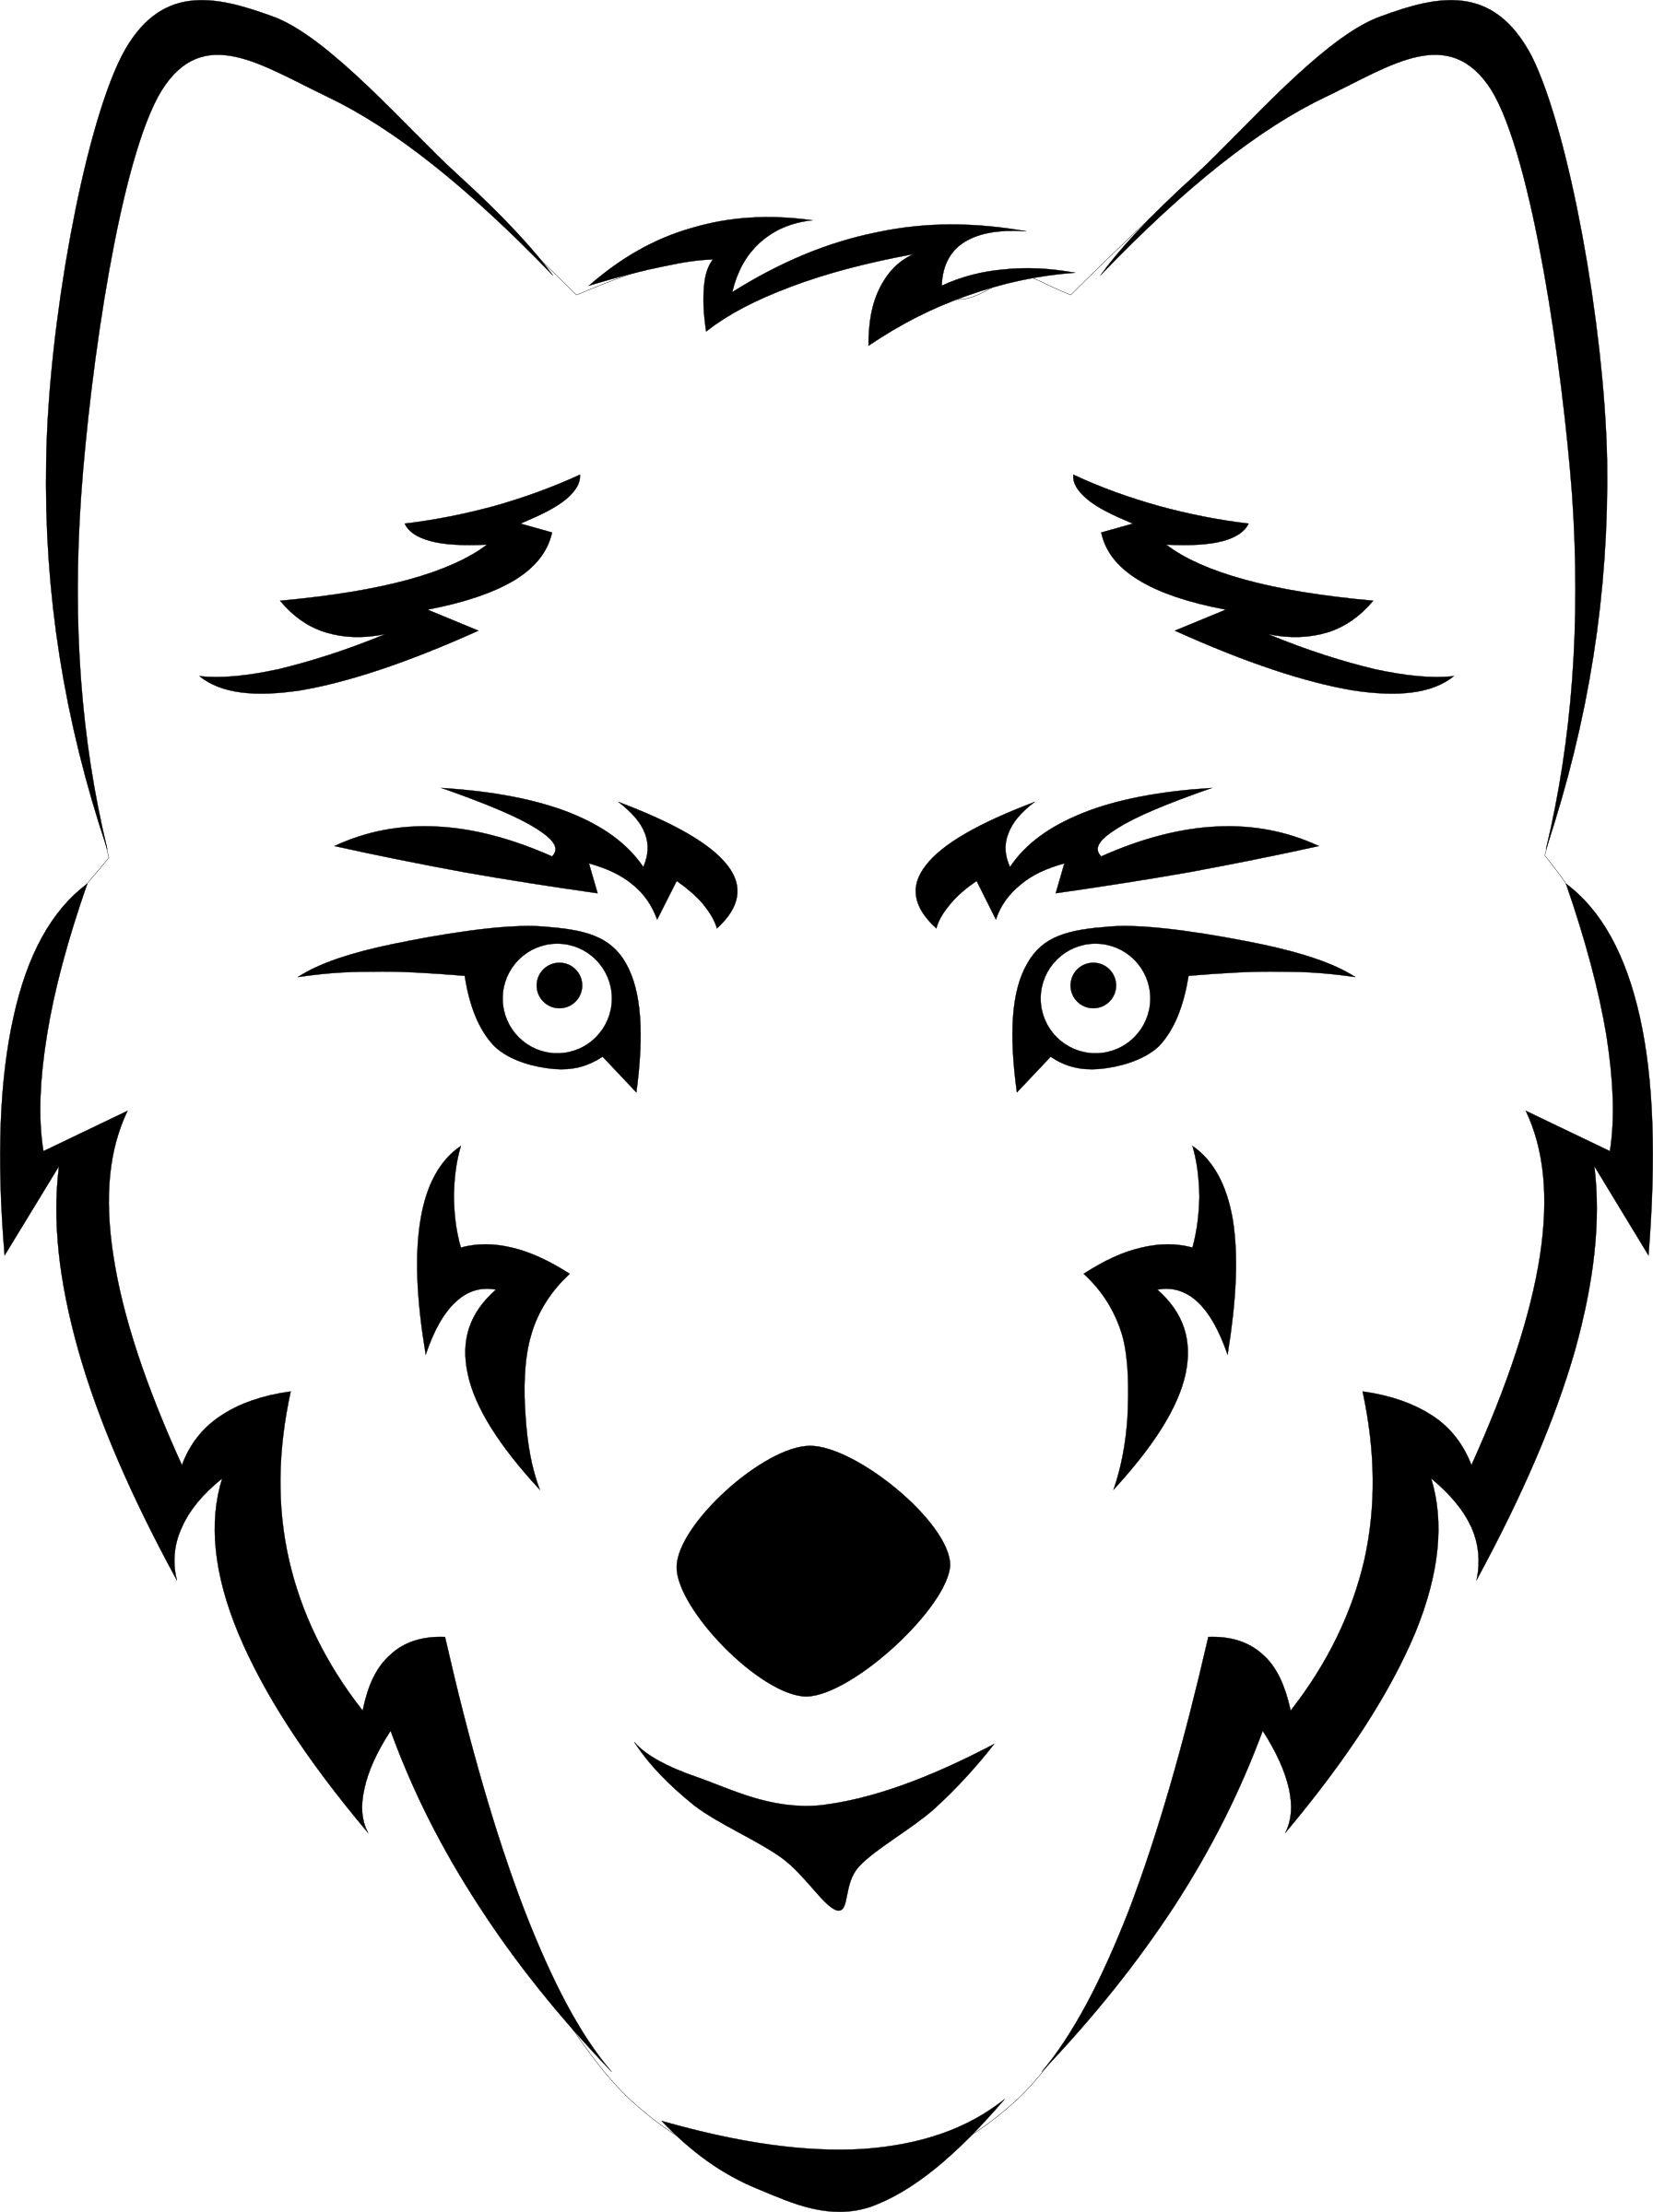 Blank wolf head stylized. Wolves clipart nose